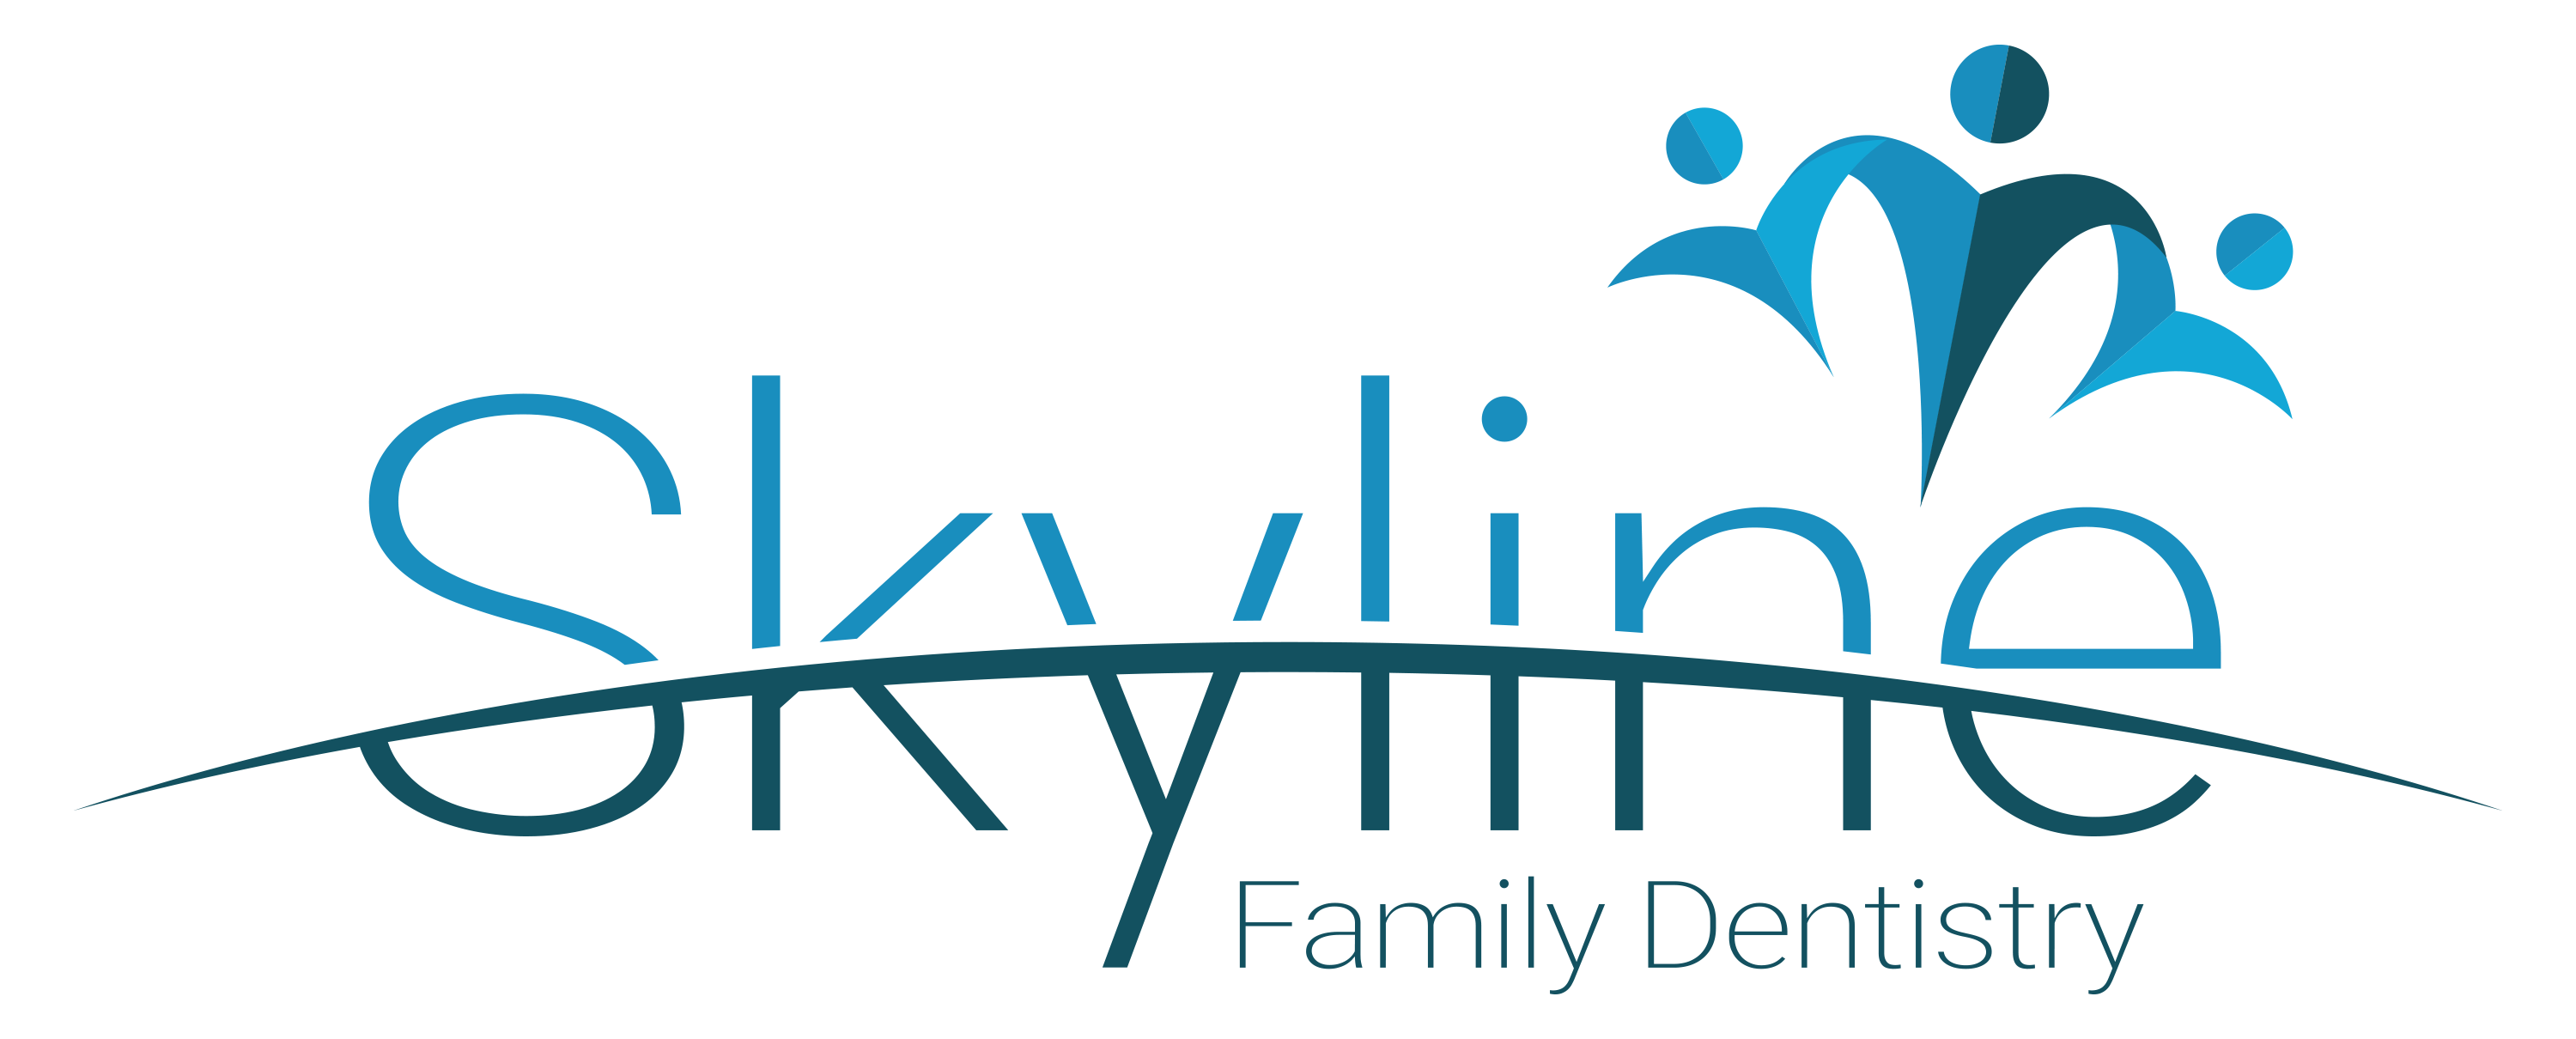 Dentist in Bishop California | Skyline Family Dentistry | Dr. Gabriel Overholtzer